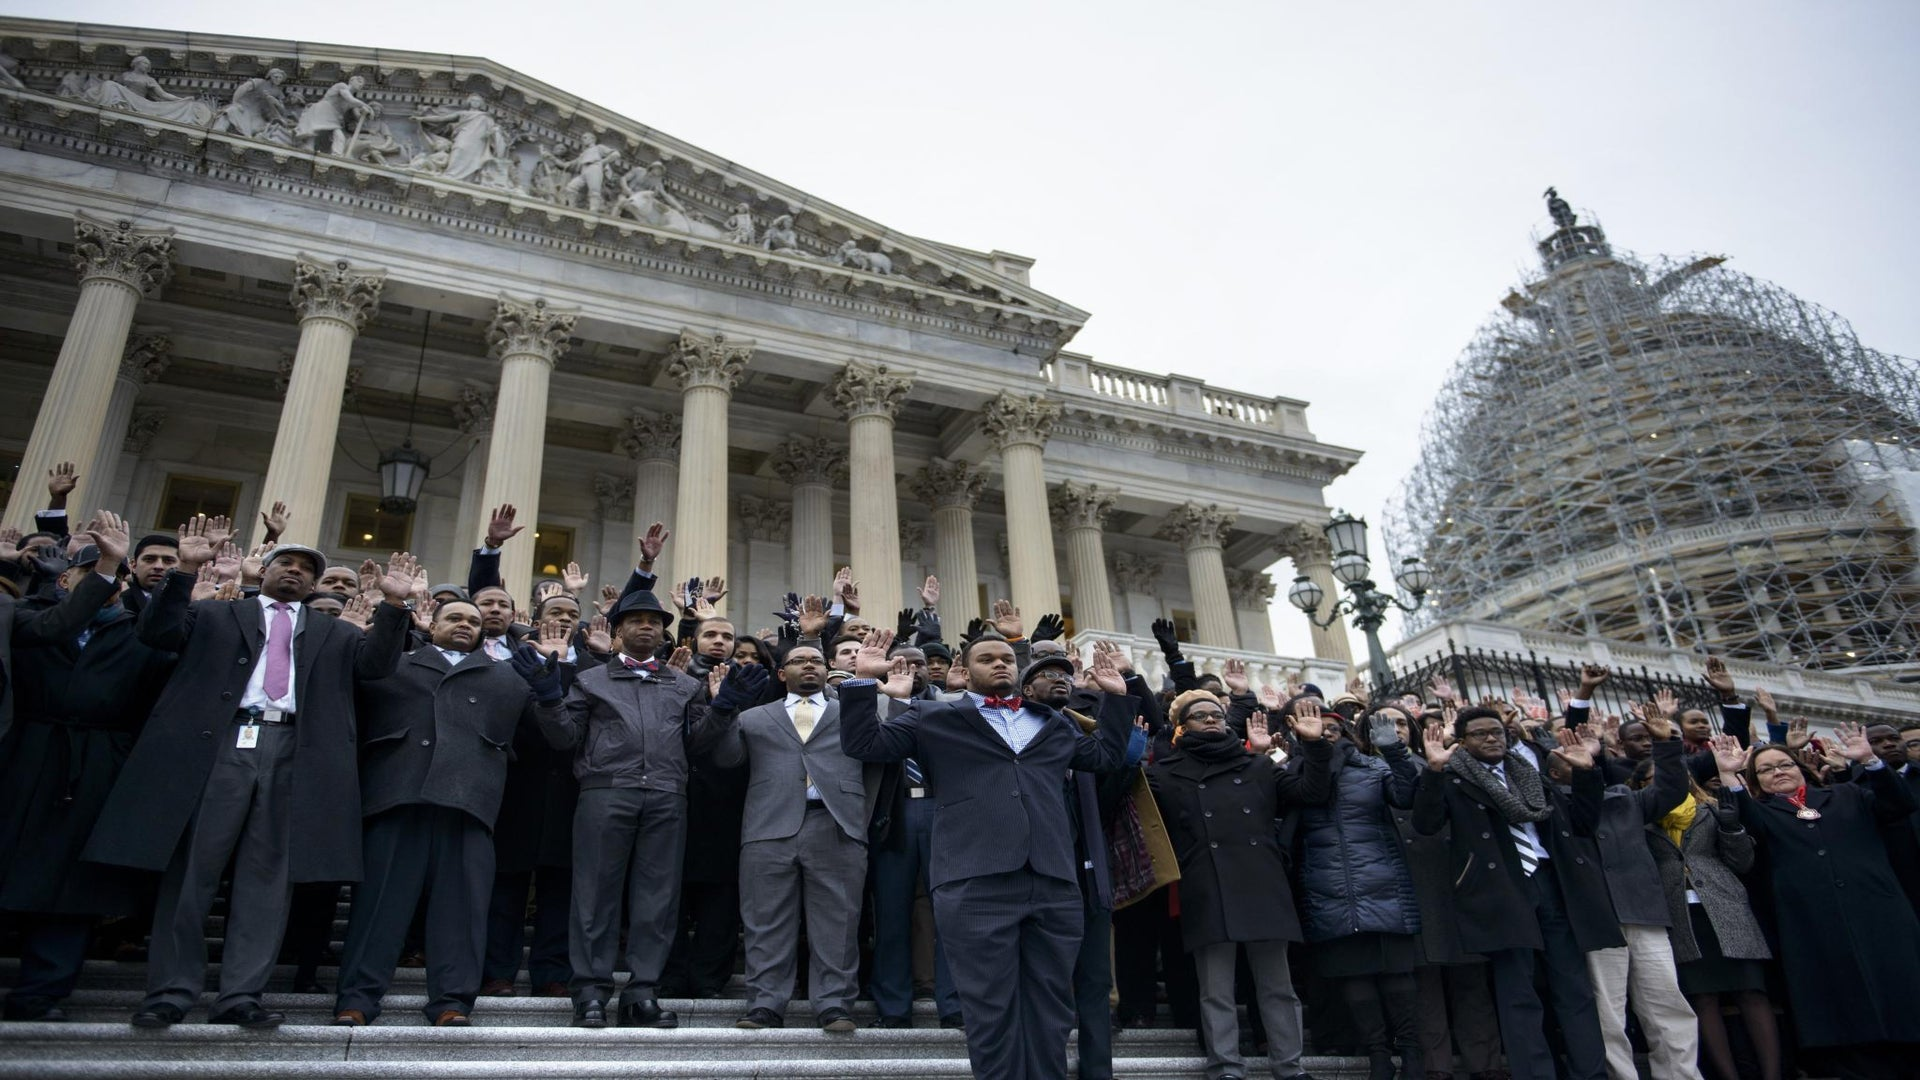 100 Congressional Staffers Staged a Walkout to Protest Grand Jury Decisions